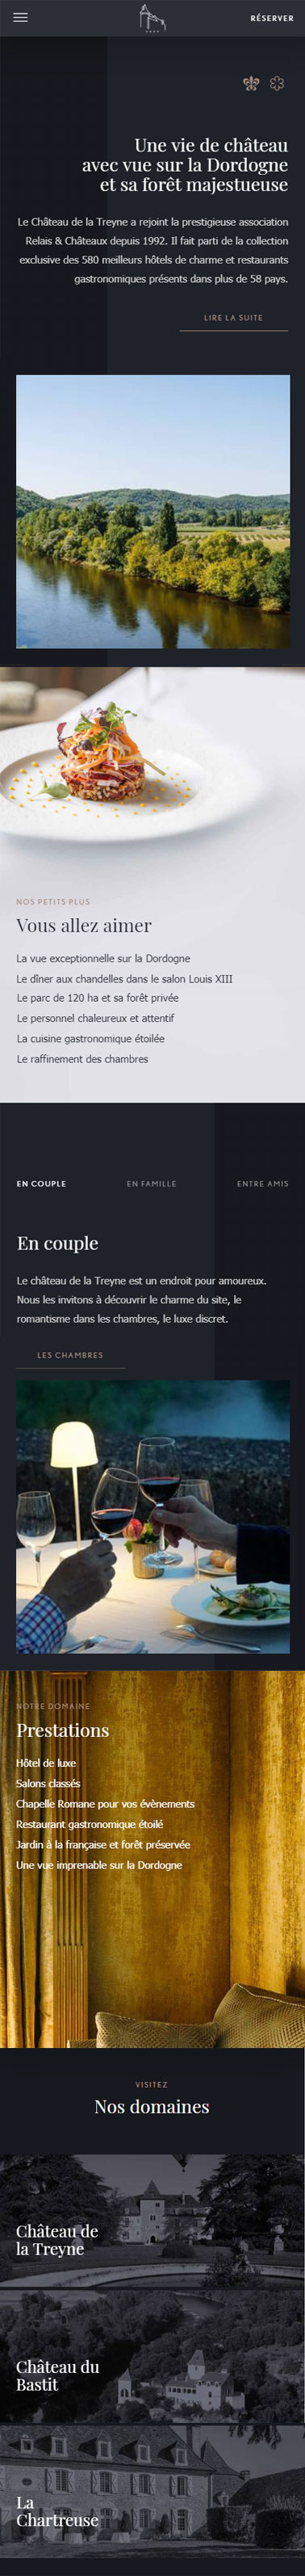 Version mobile du site